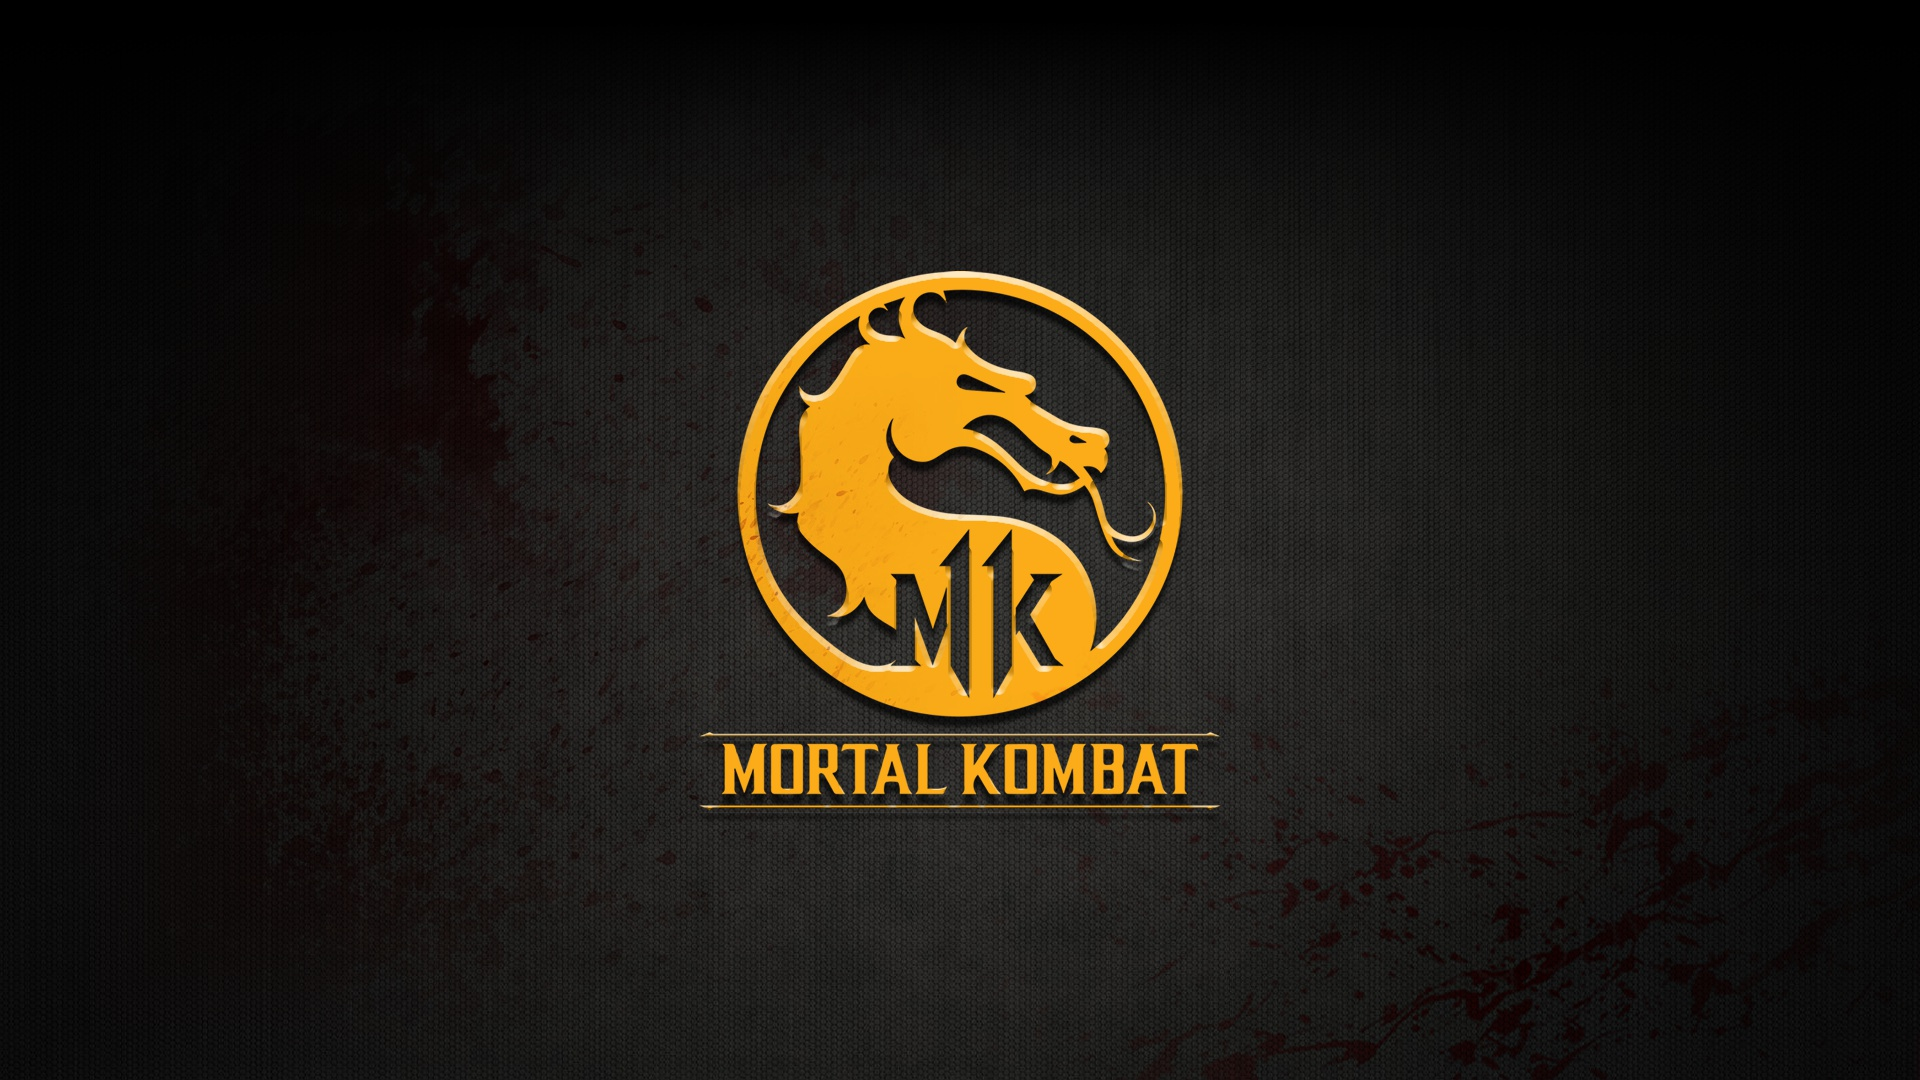 Dragon Logo Mortal Kombat Games Fan Site